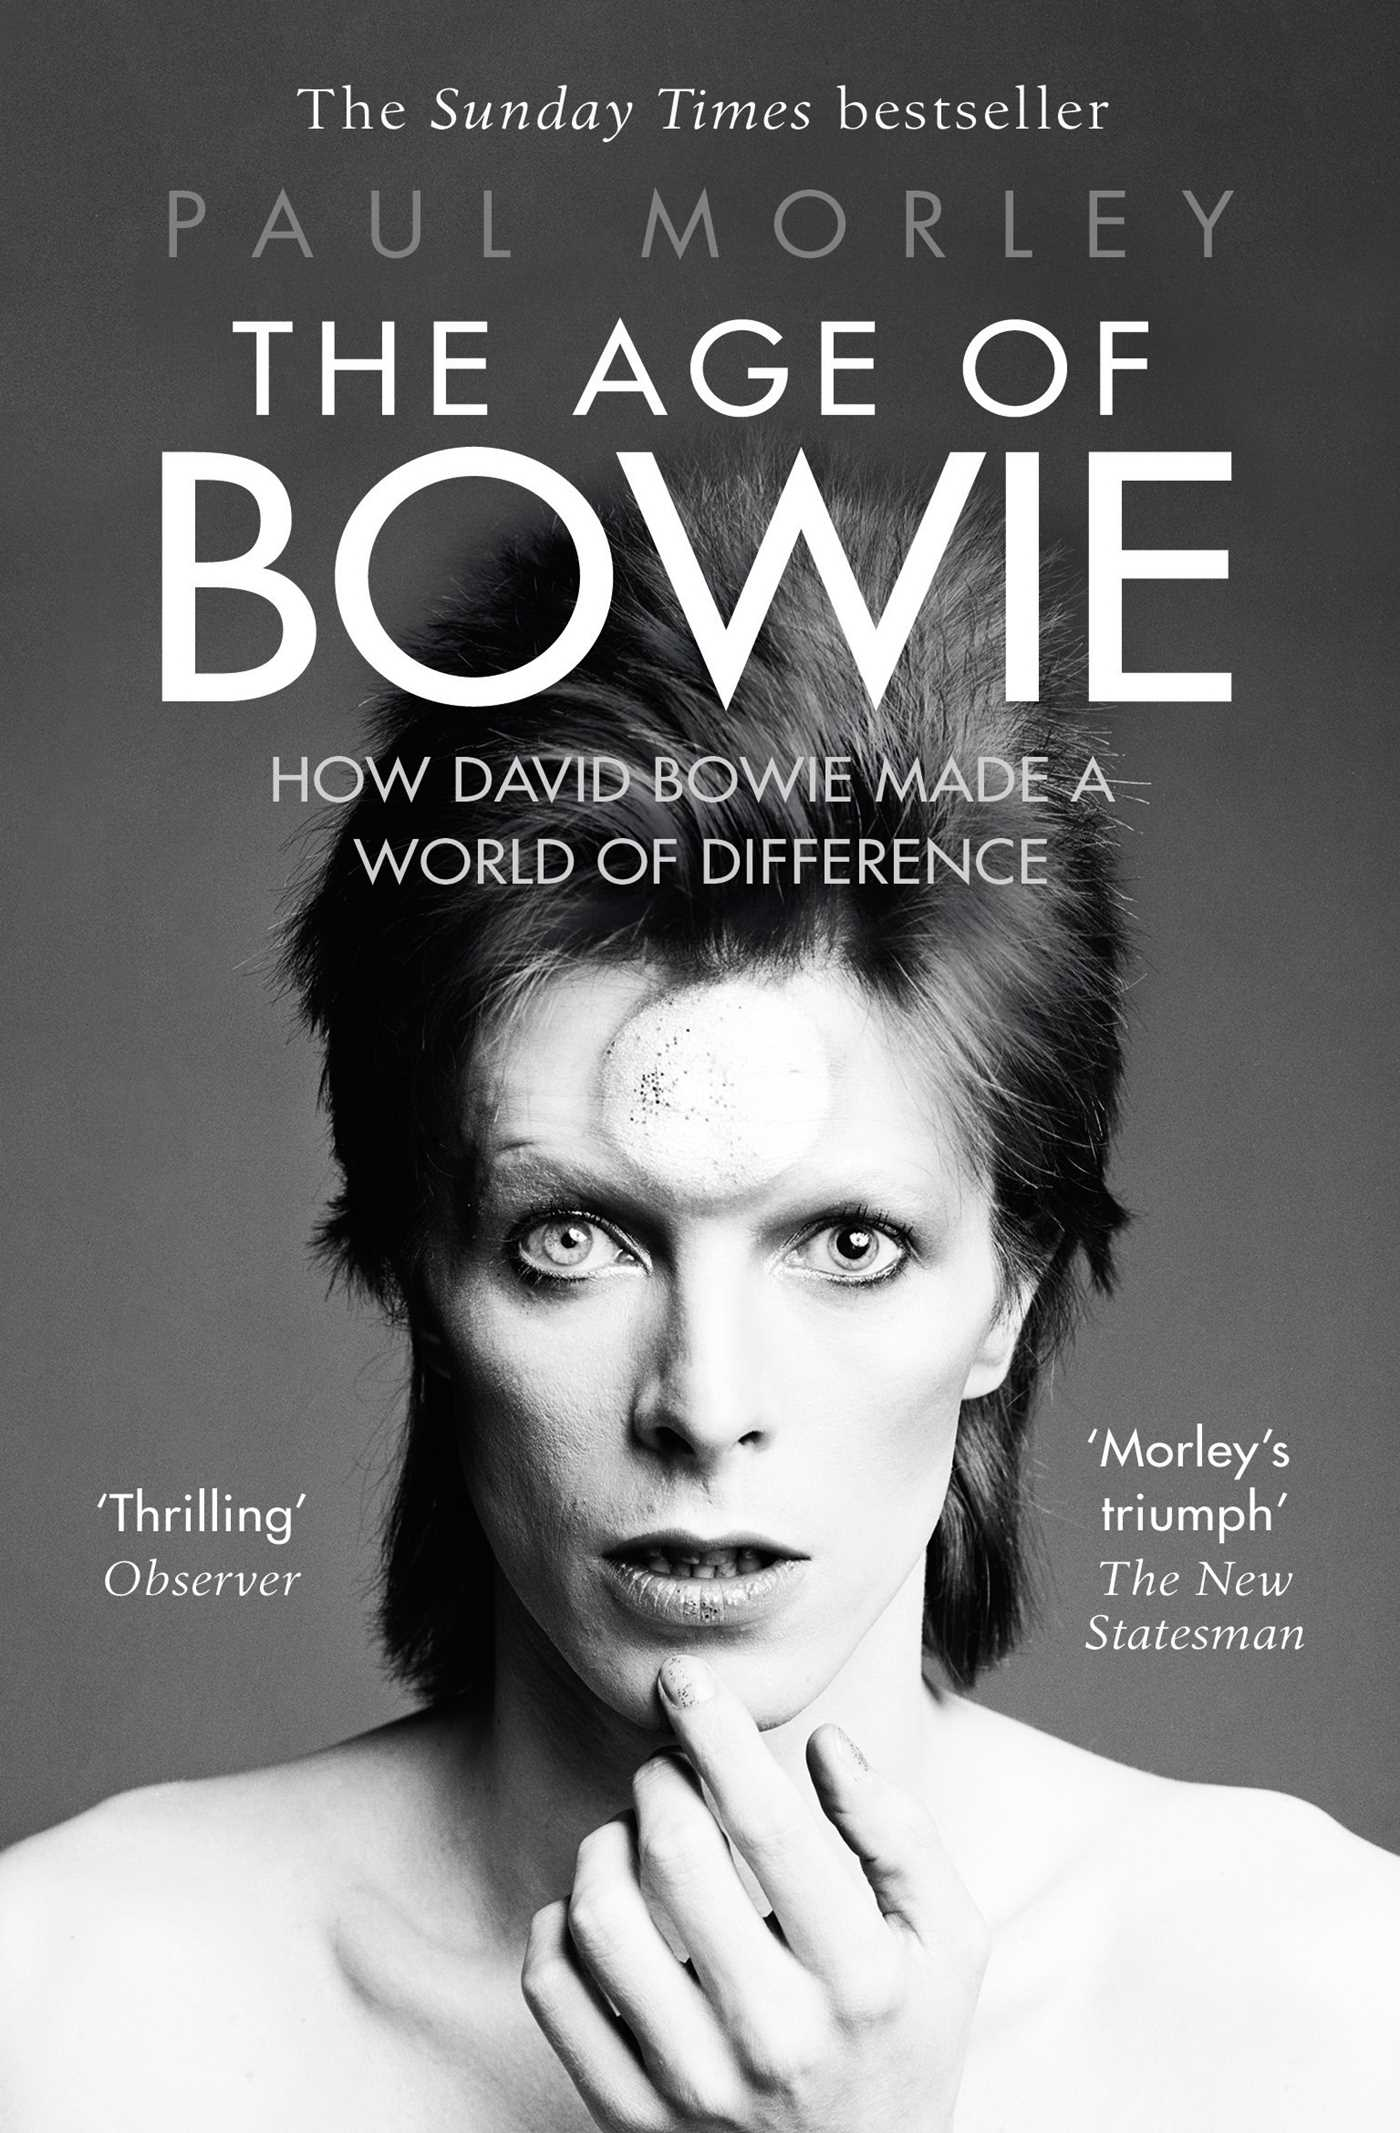 The age of bowie 9781471148101 hr